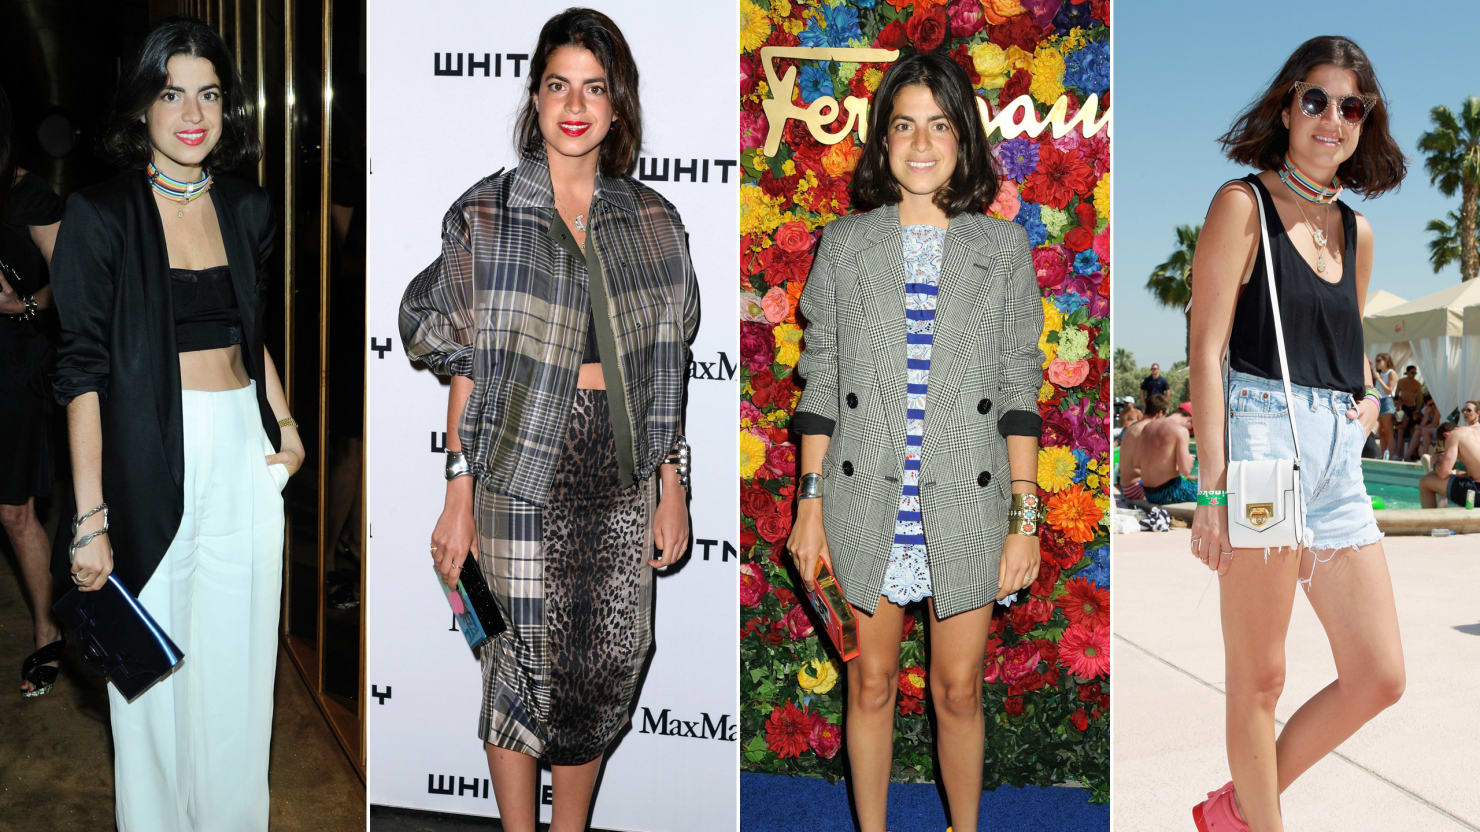 The 15 Most CringeWorthy Bits From Man Repeller Seeking Love